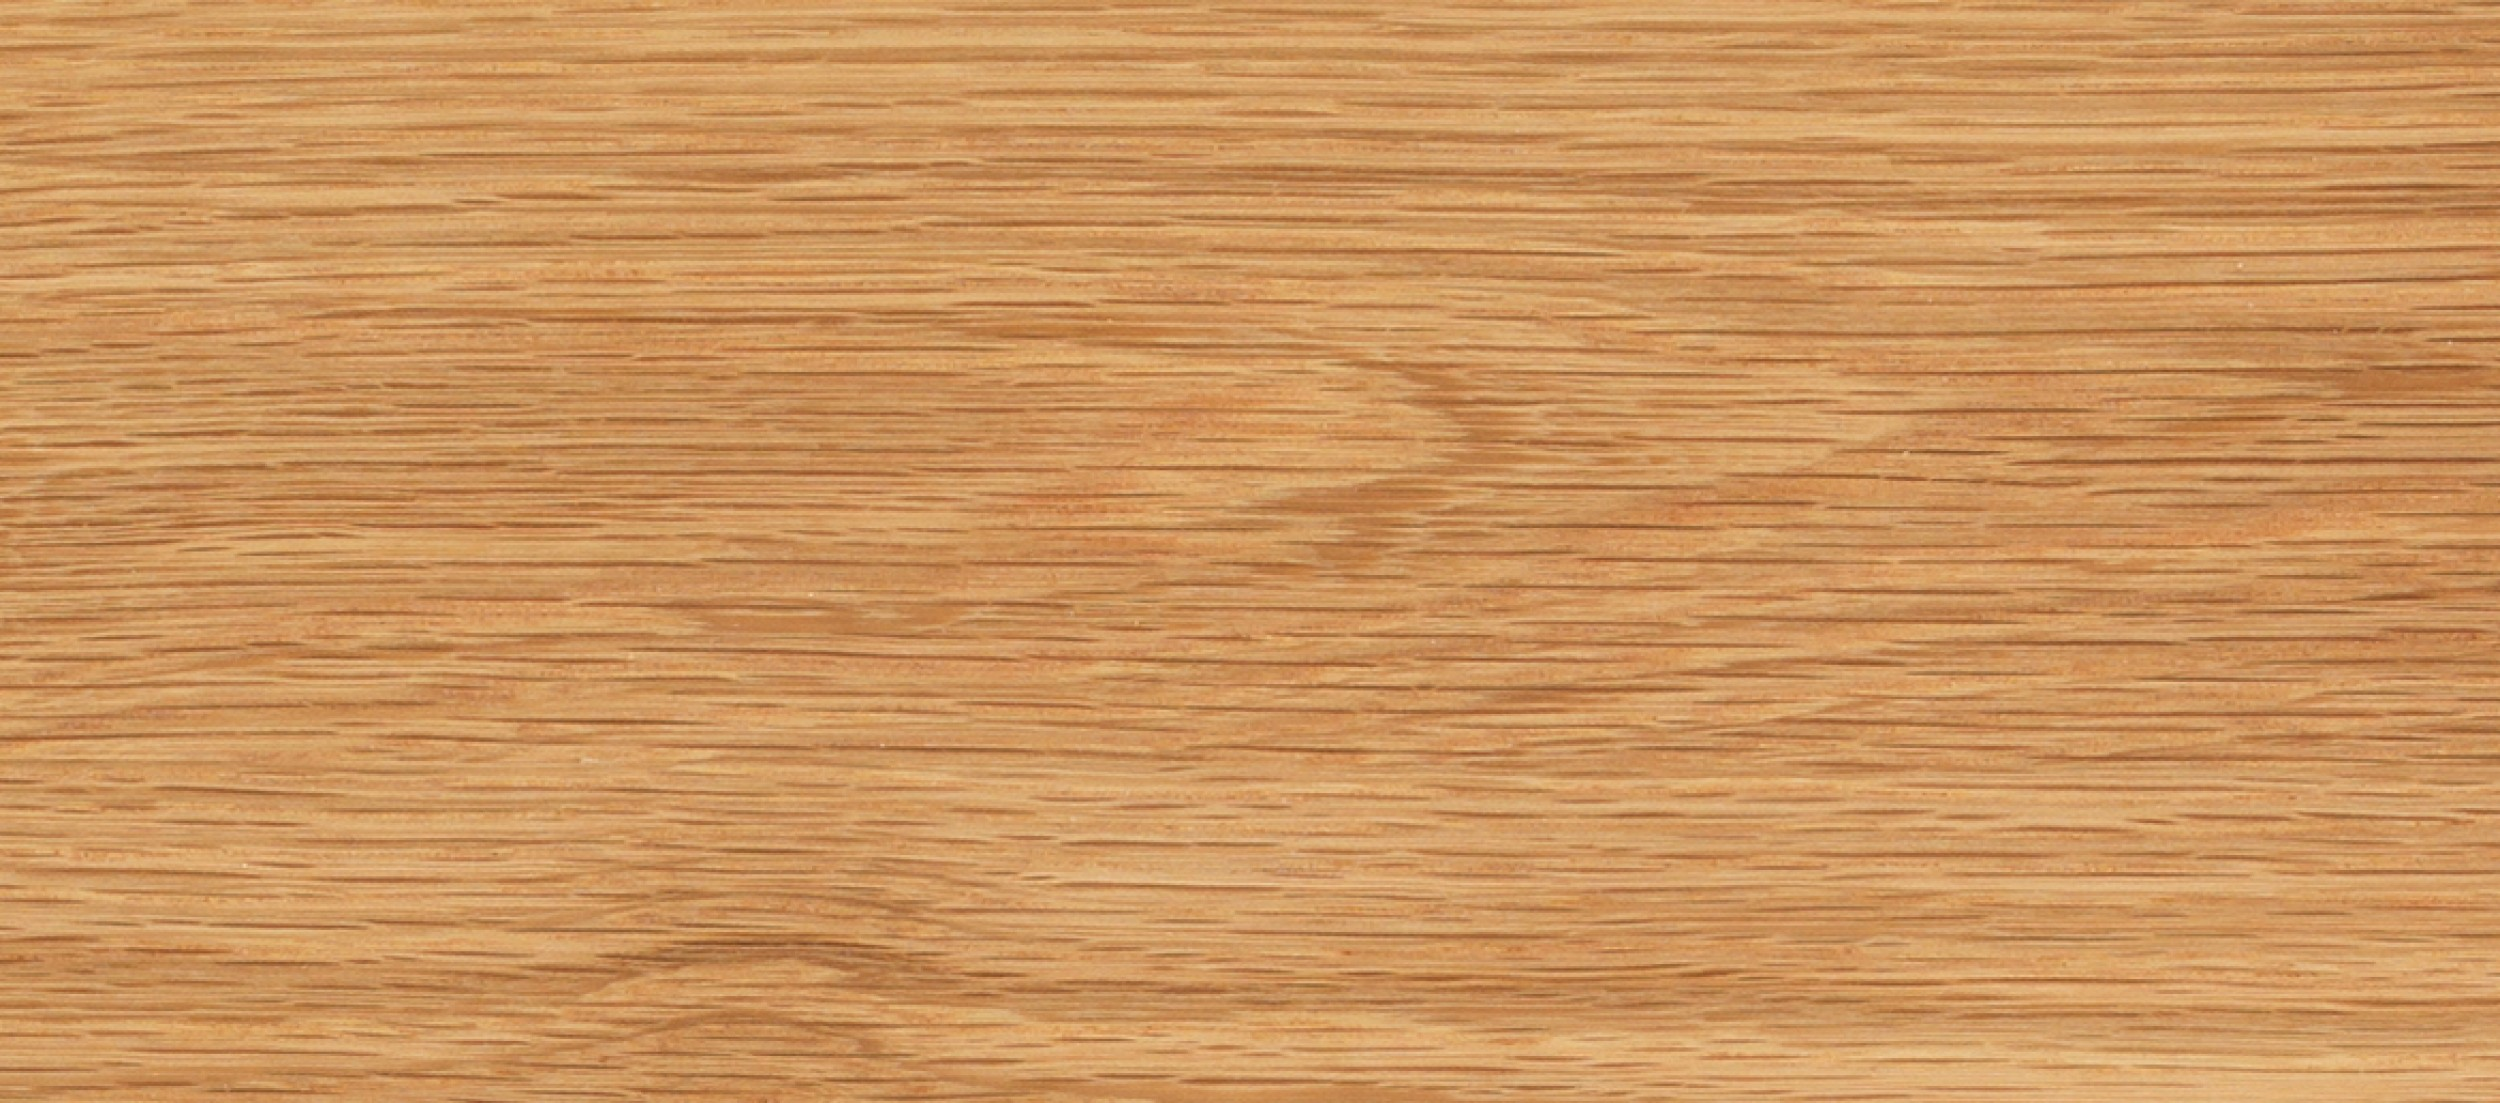 Medium Wood Grain